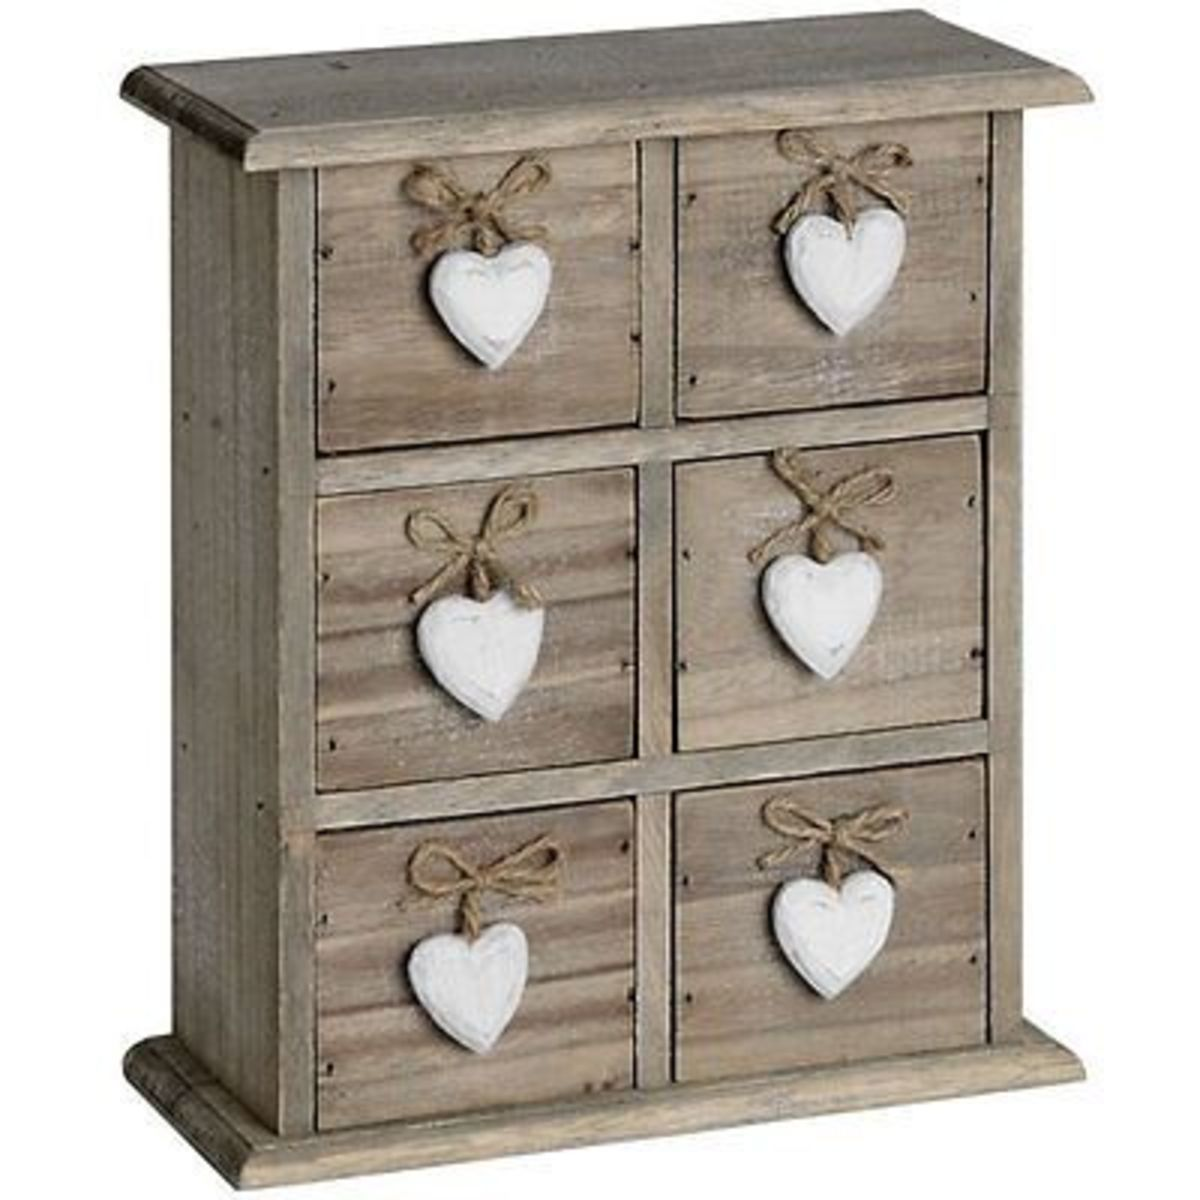 Shabby Chic / Vintage Style 6 Drawer Heart Box